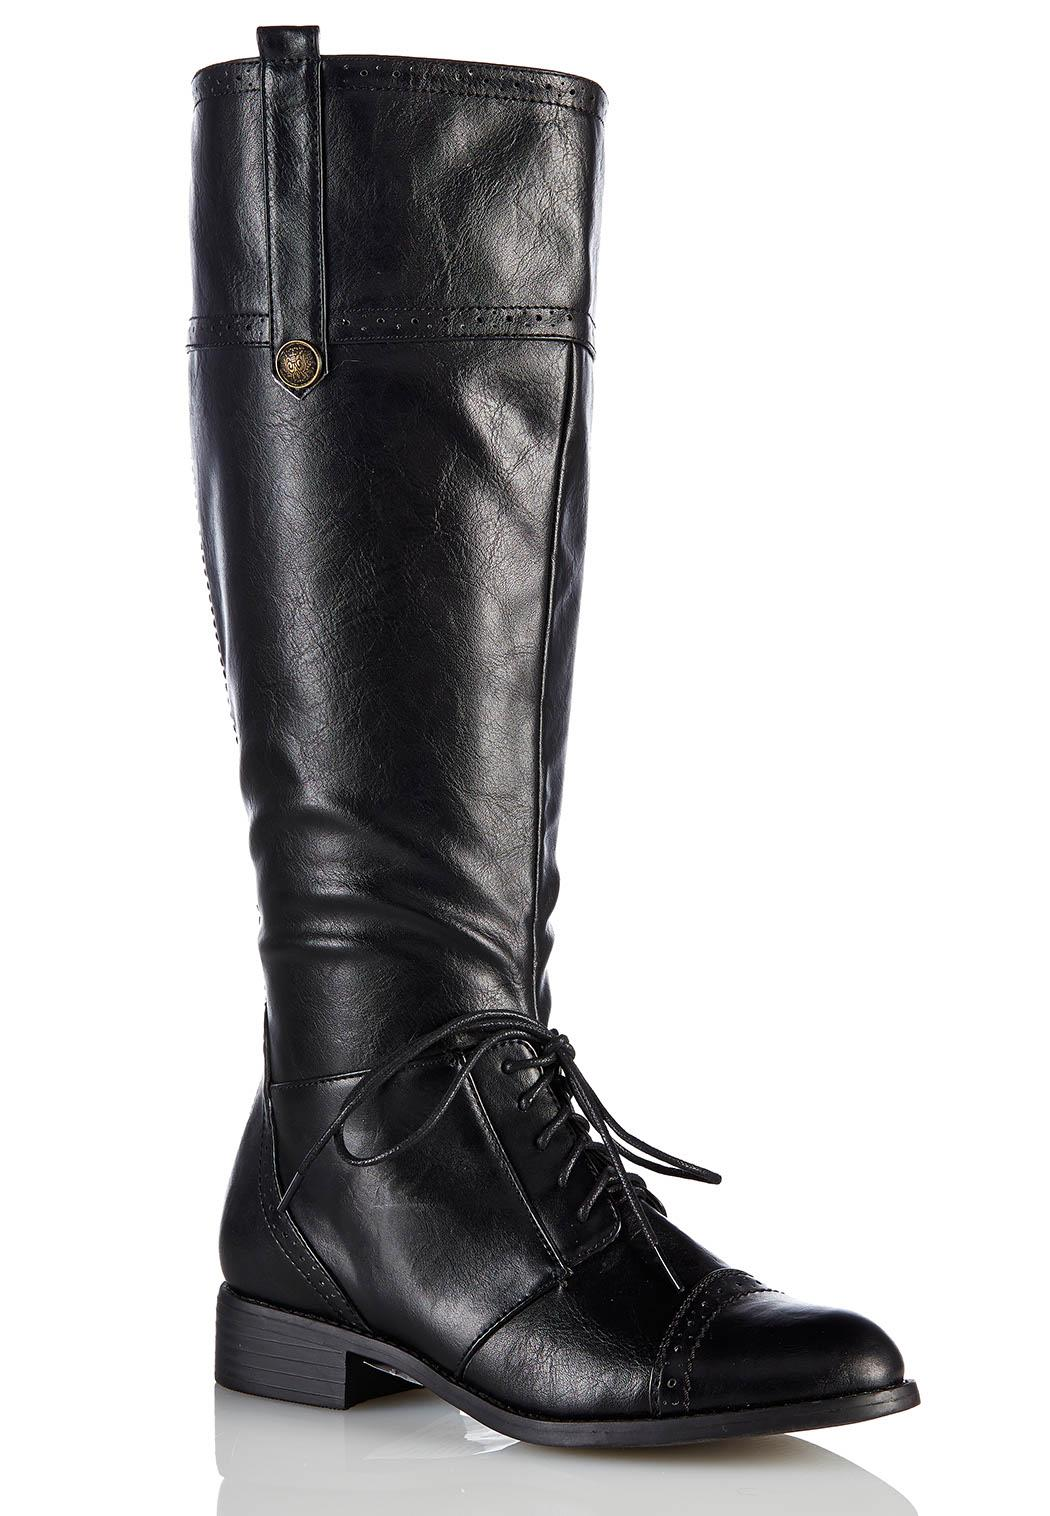 Shoes boots lace up oxford riding boots style 30494454